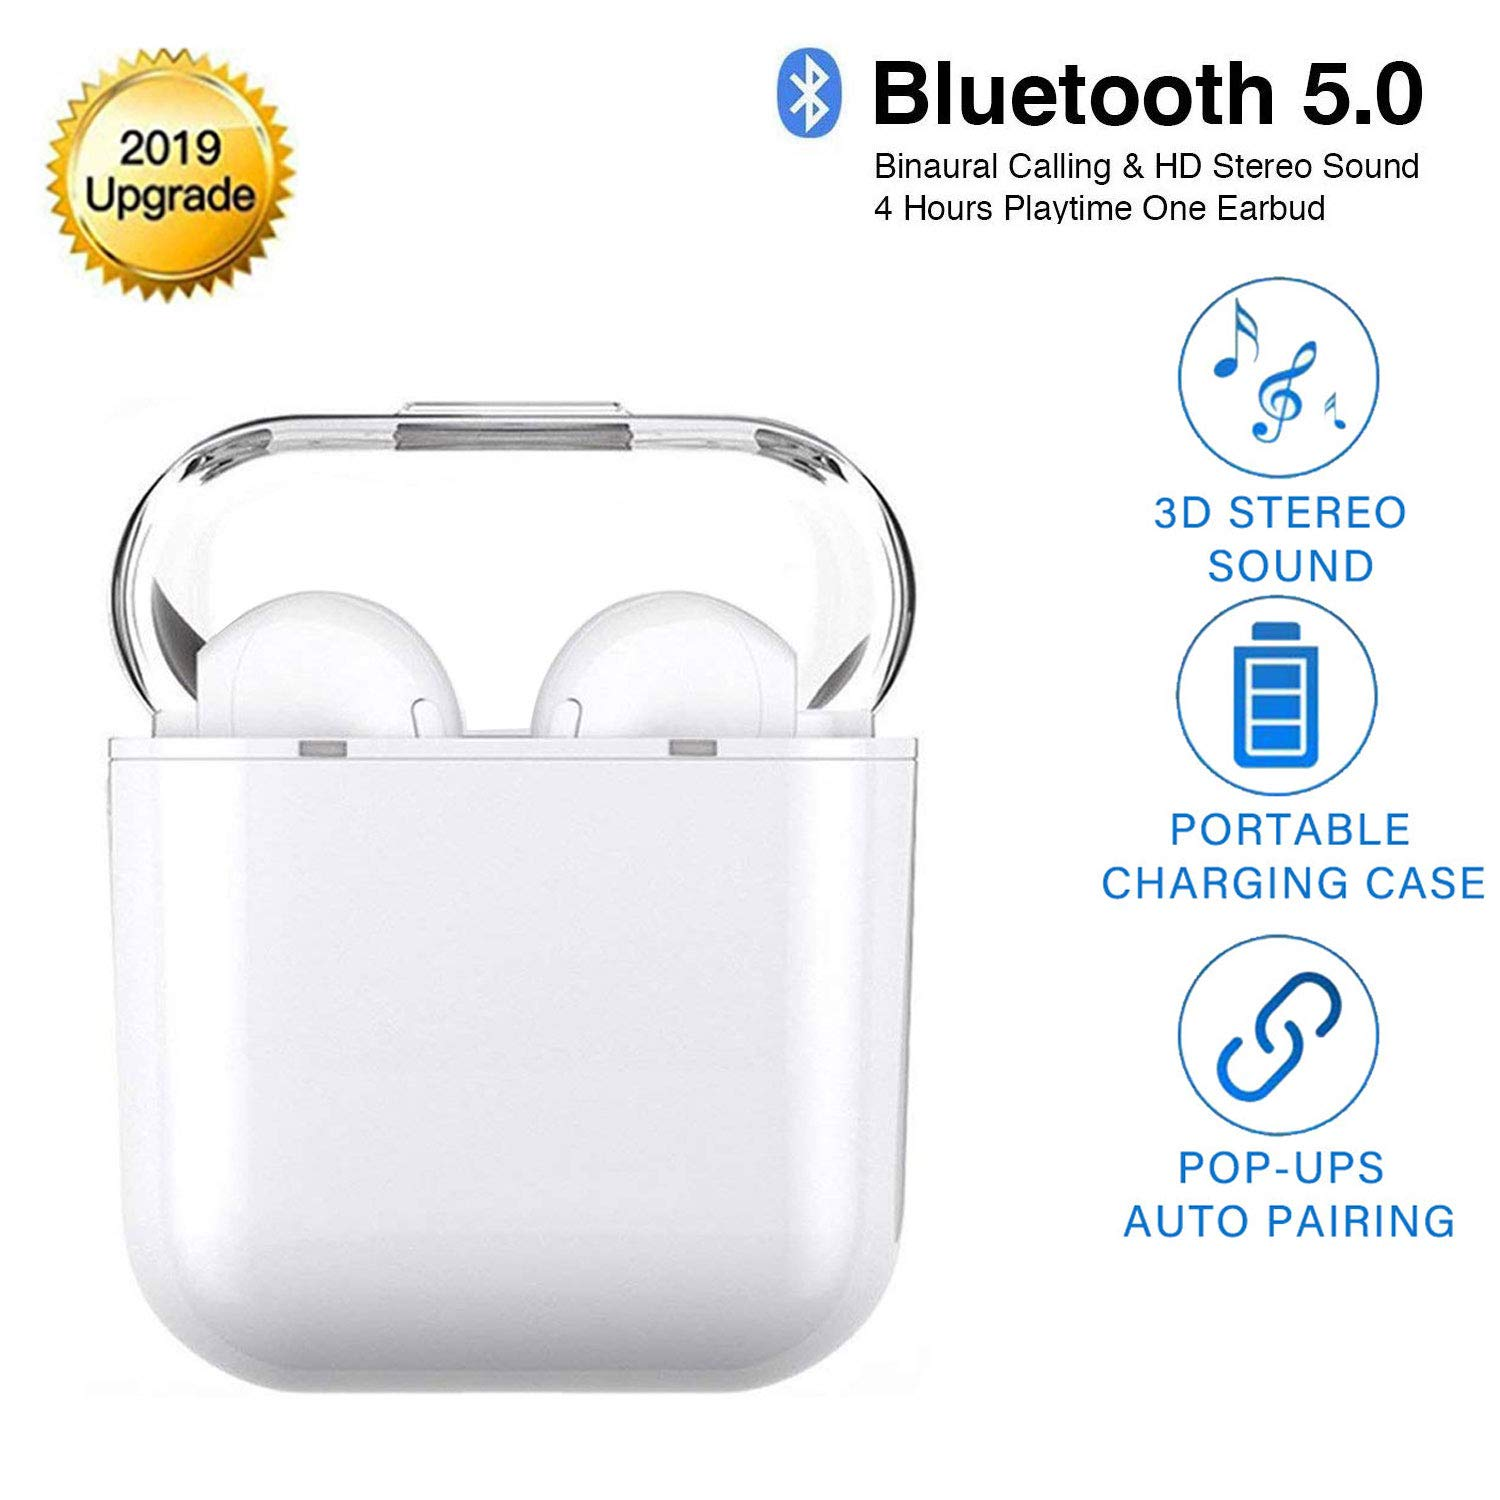 Bluetooth 5.0 Earbuds Noise Canceling Sports 3D Stereo Transparent lid Headphones,IPX5 Waterproof, Pop-ups Auto Pairing, Built-in Binaural Mic Headset for Android iPhone Apple Airpods